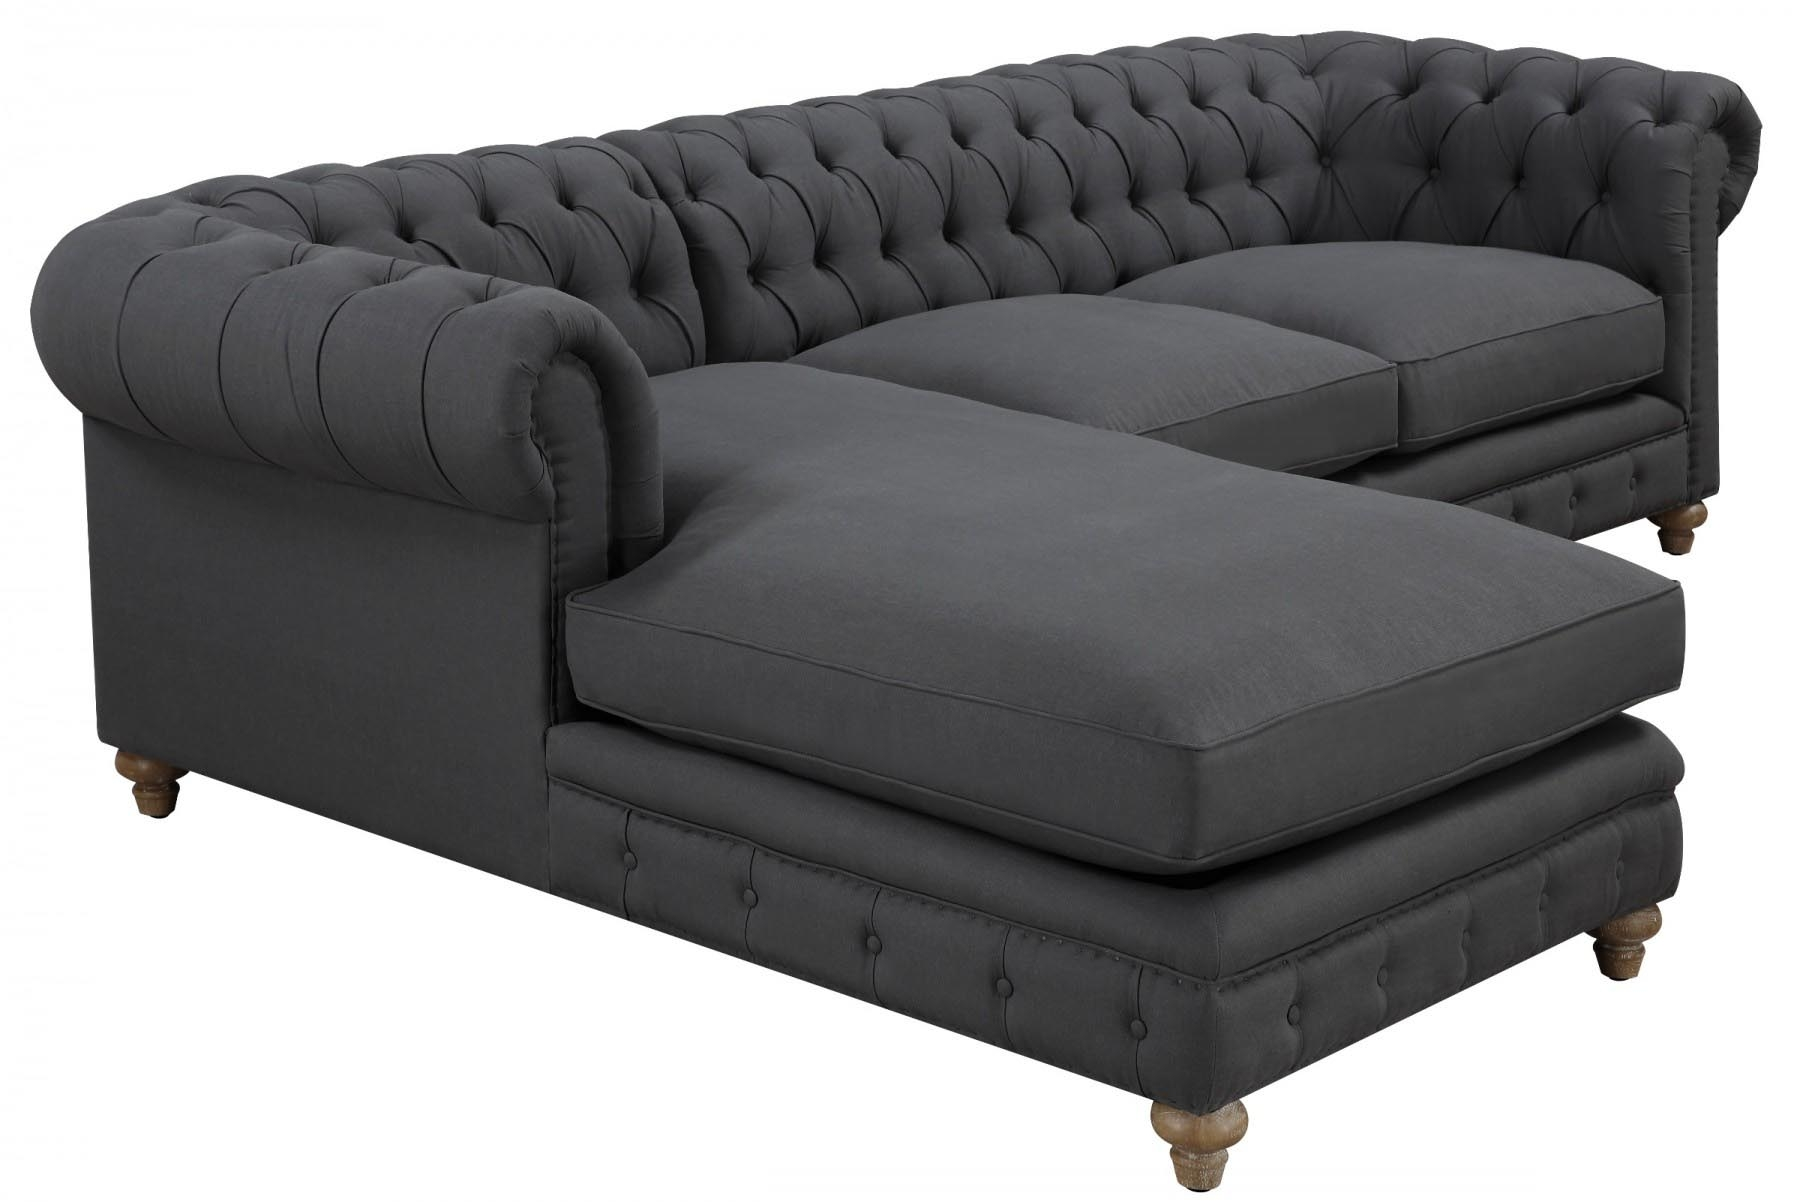 Oxford Grey Linen Sectional Sofa Tov Furniture Modern Manhattan In Oxford Sofas (Image 8 of 15)